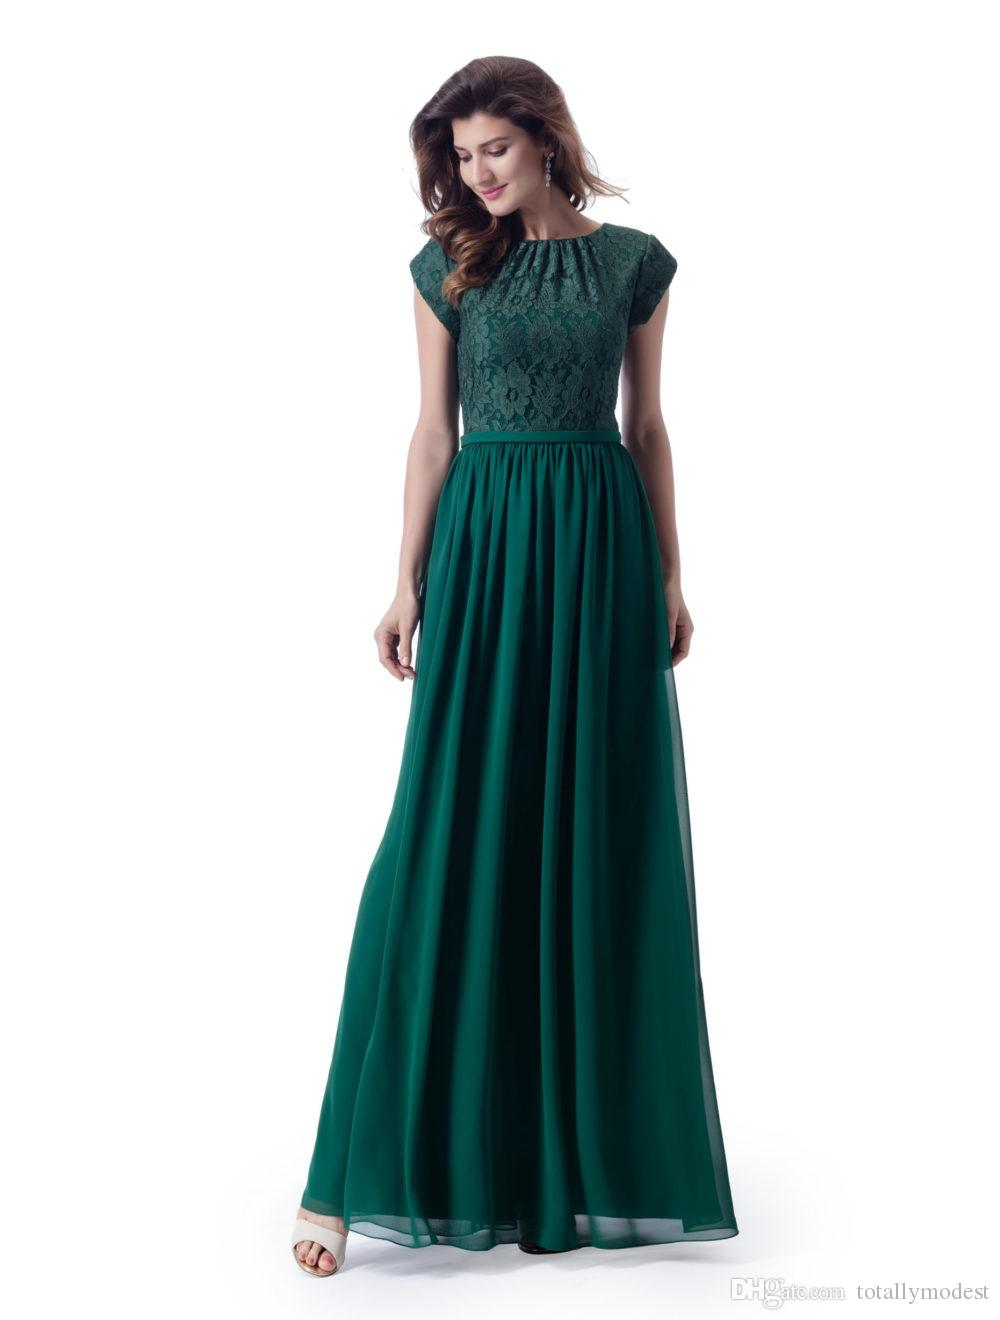 Formal New Arrival Green Modest Bridesmaid Dresses With Lace Top Chiffon Skirt Simple Sleeved Temple LDS Wedding Party Guest Dress